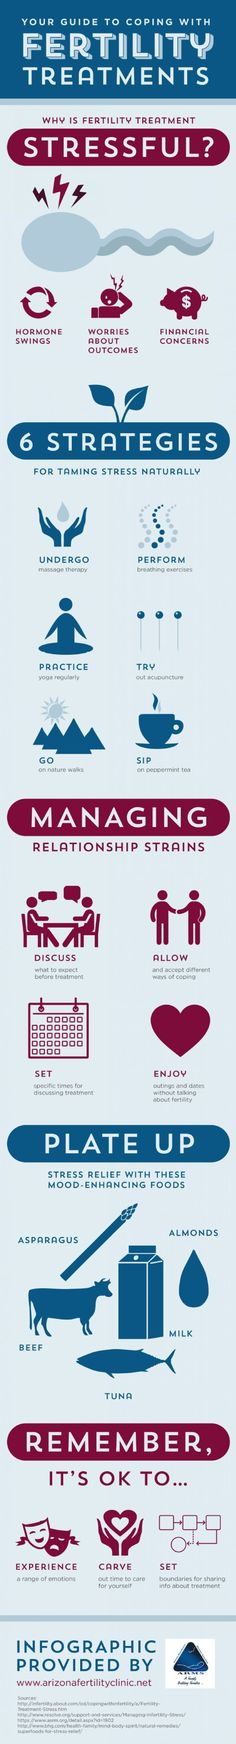 Your Guide to Coping with Fertility Treatments  Infographic